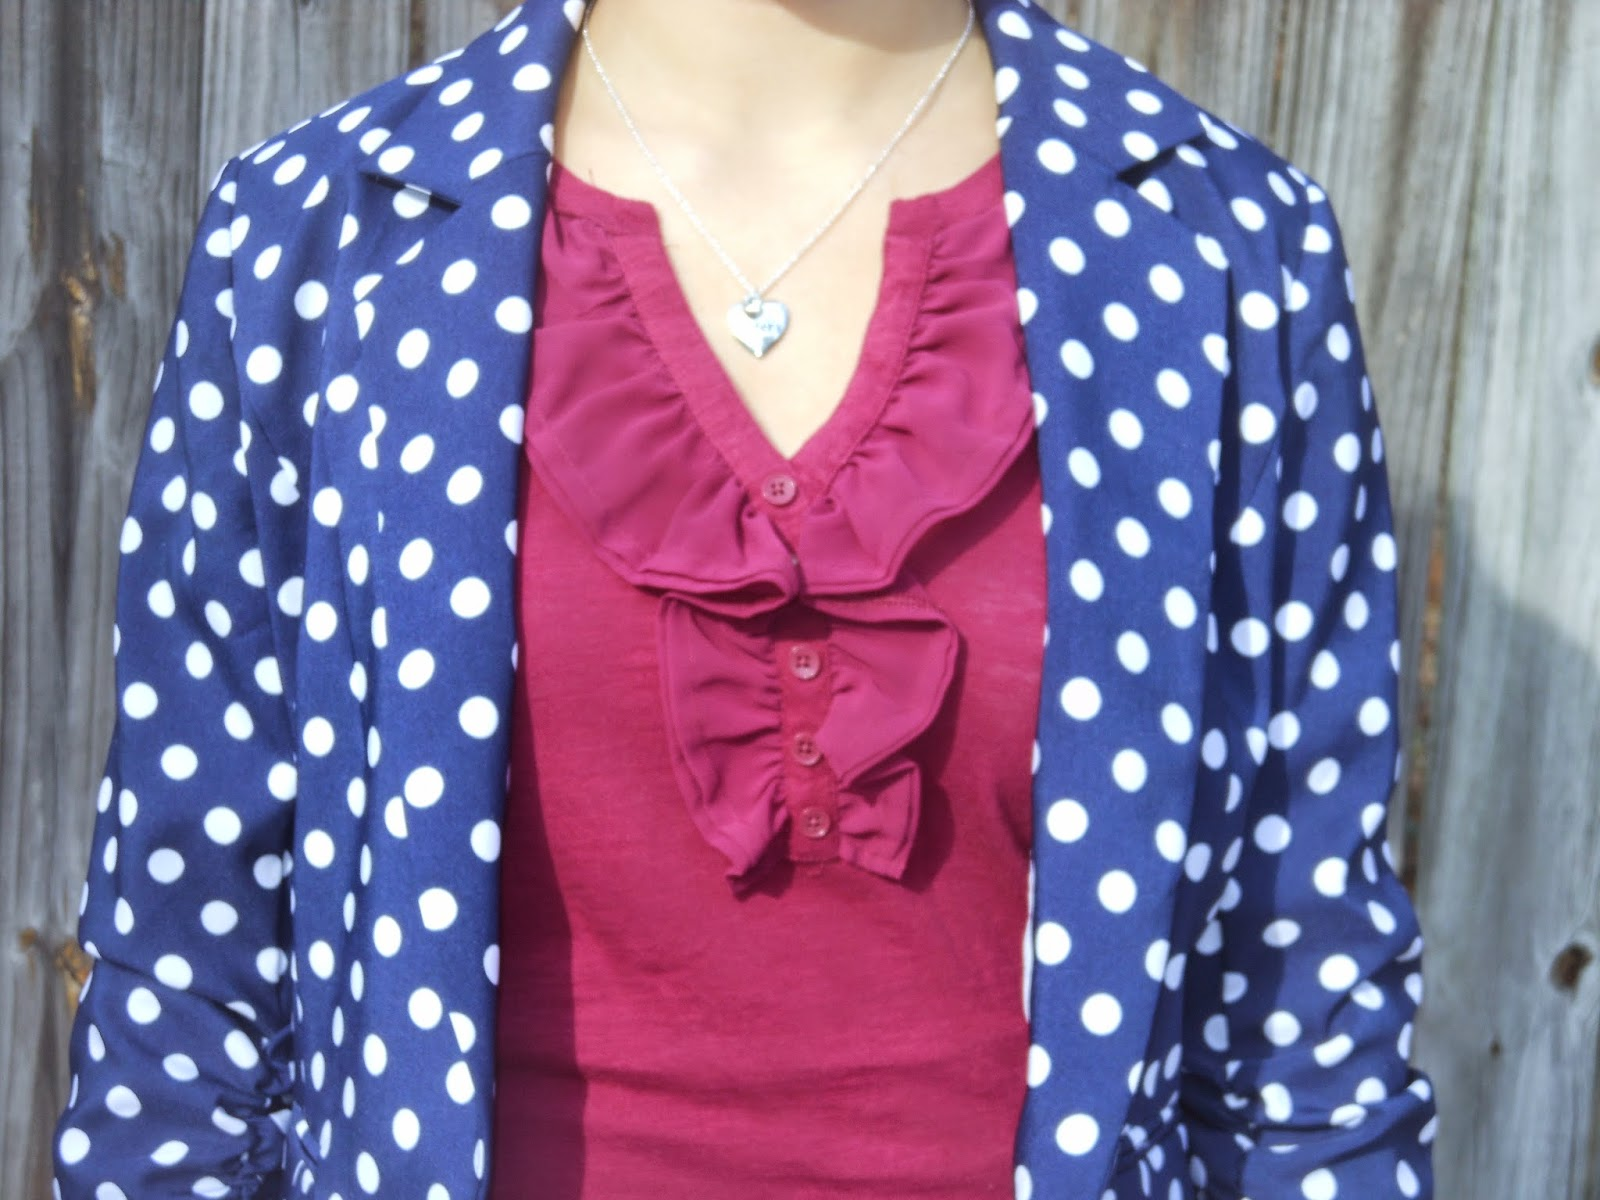 Polka Dots and Plum. Polka dot blazer, plum purple ruffle top, jeans, brown riding boots, simple jewelry.